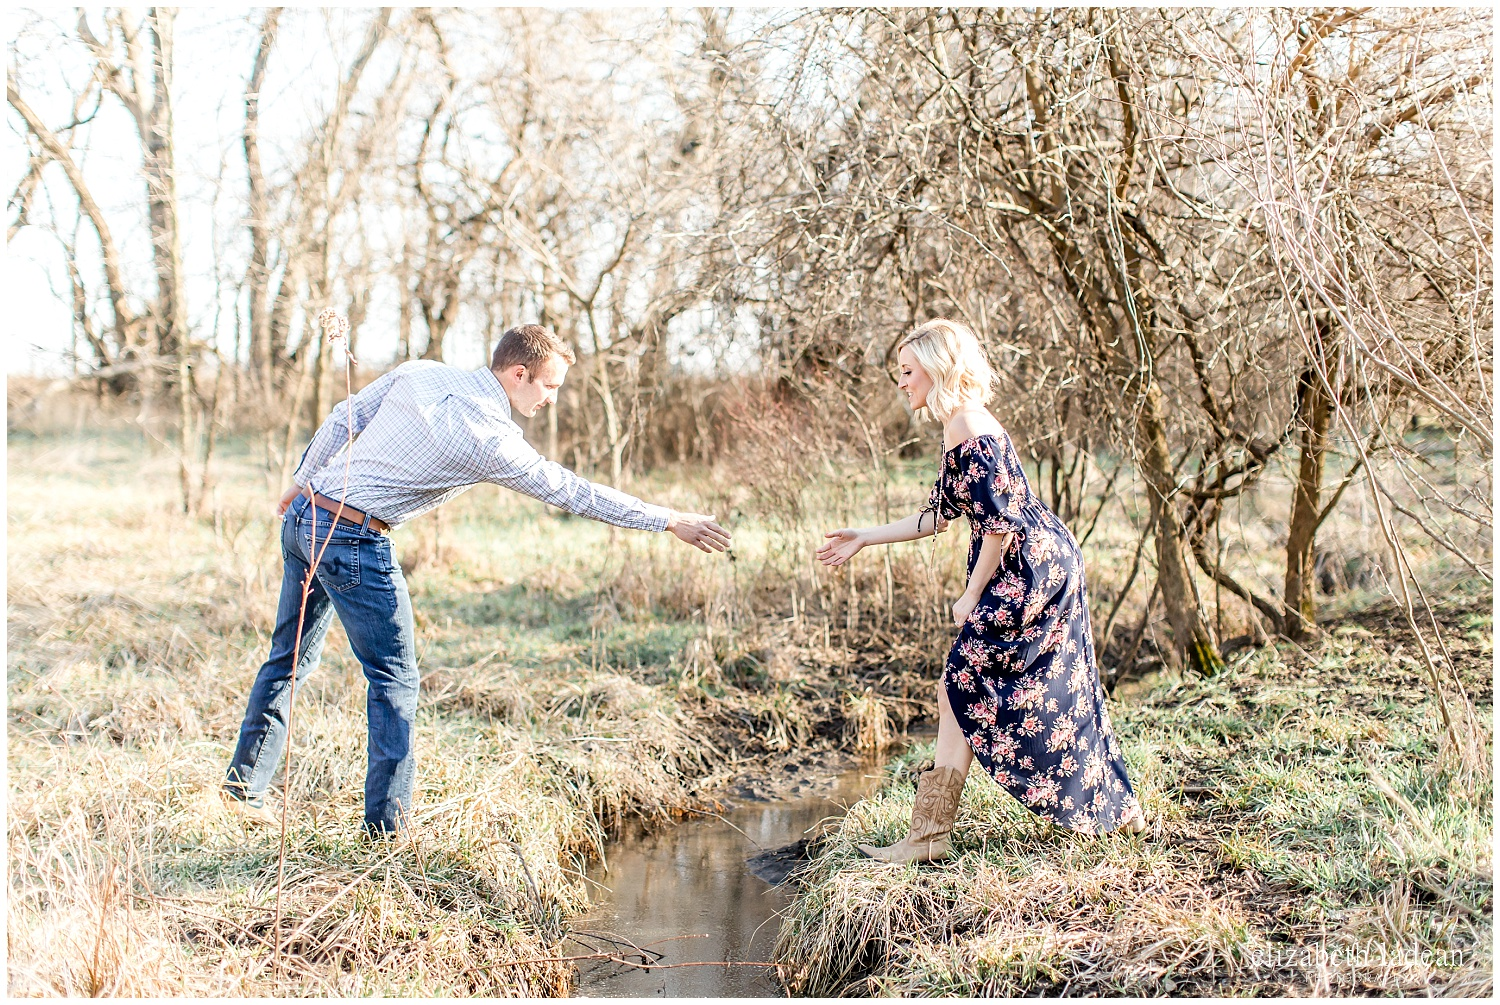 -behind-the-scenes-of-a-wedding-photographer-2018-elizabeth-ladean-photography-photo_3412.jpg